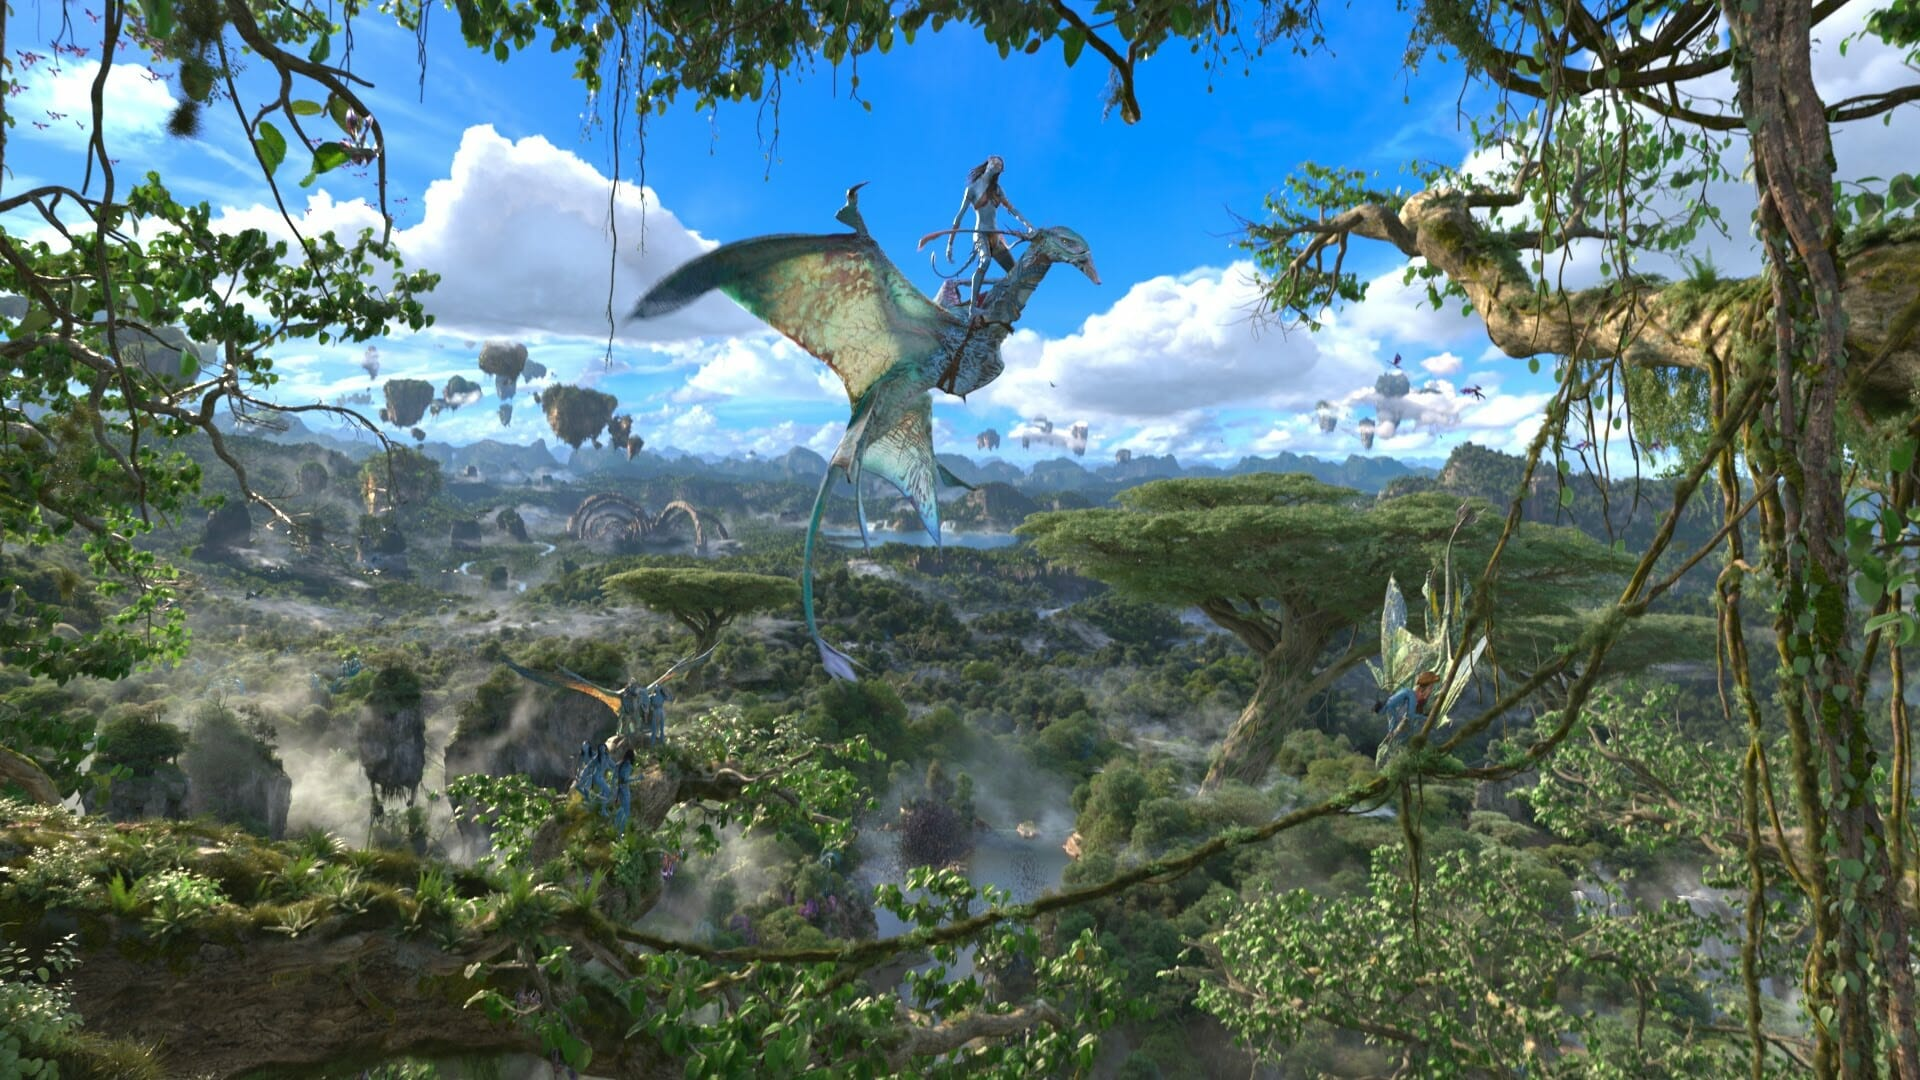 A scene from Avatar simulation with flying creatures